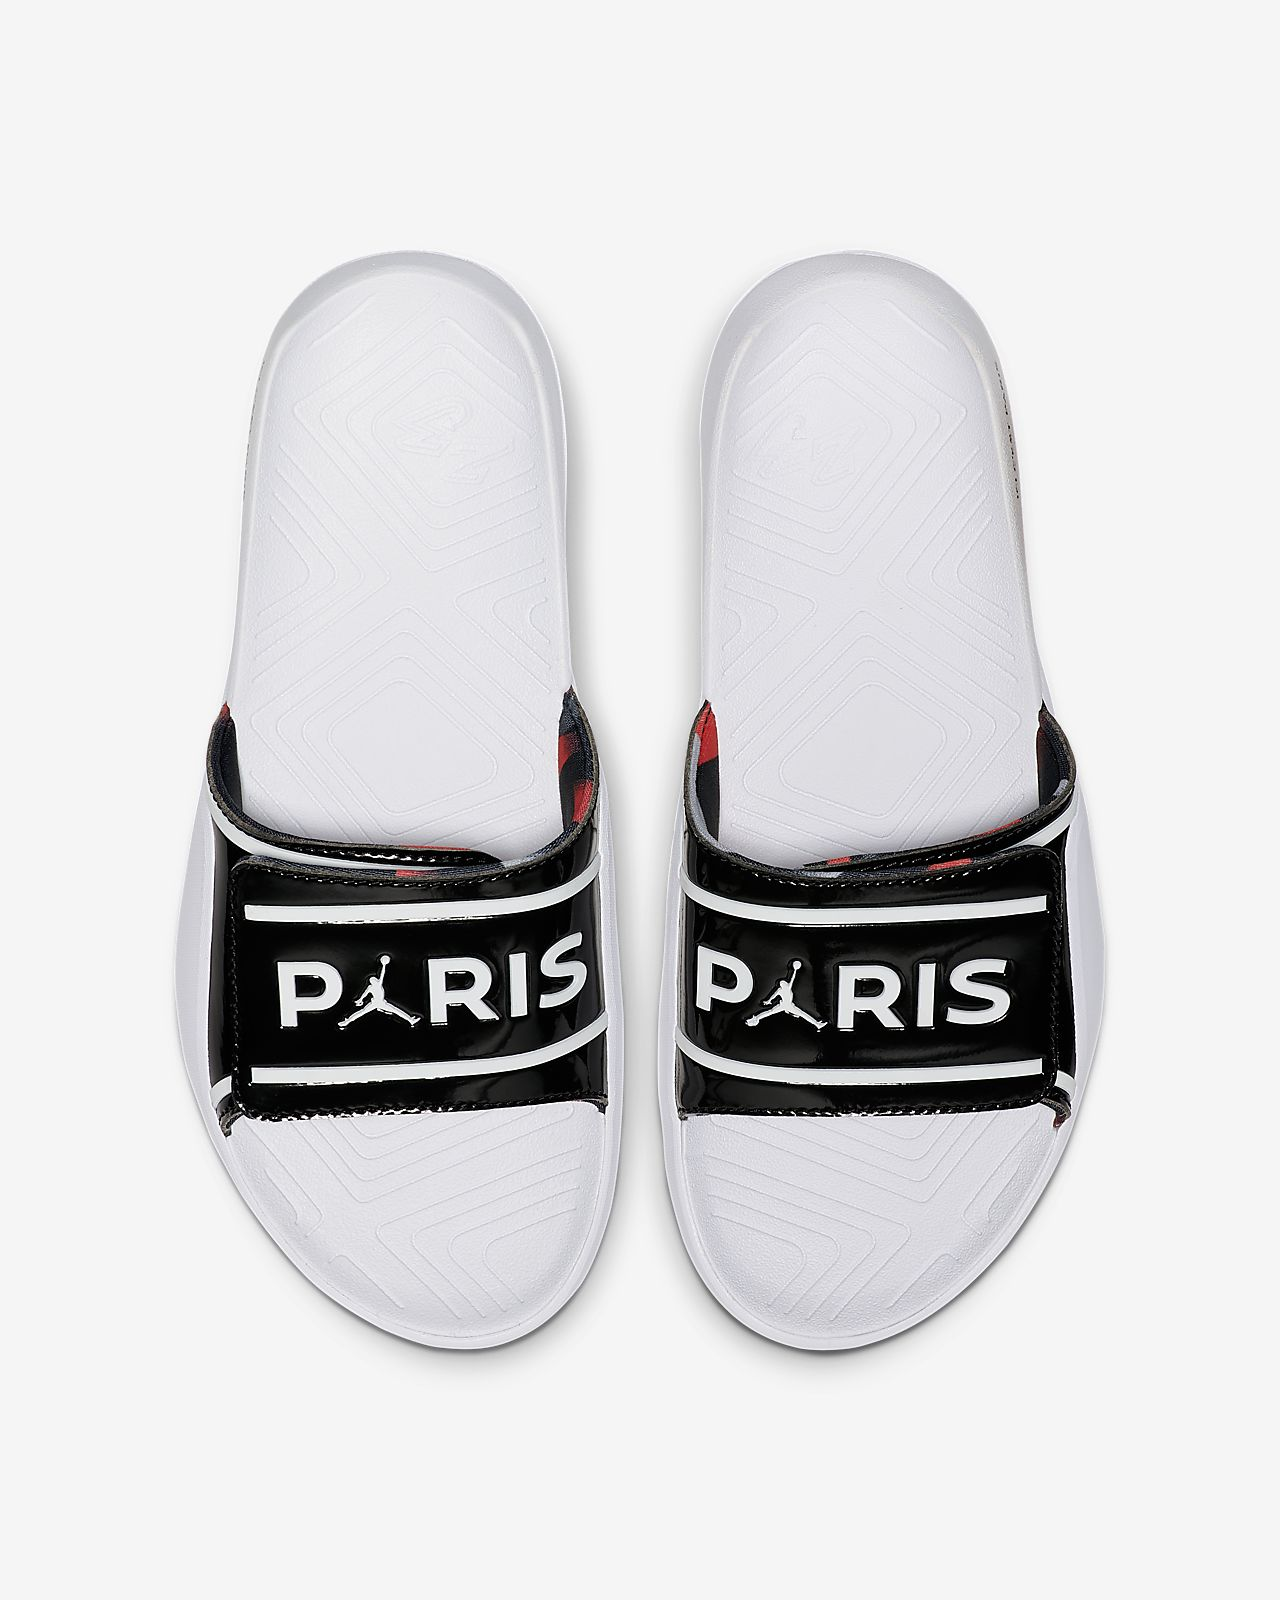 Jordan Hydro 7 V2 Paris Saint-Germain Men's Slide